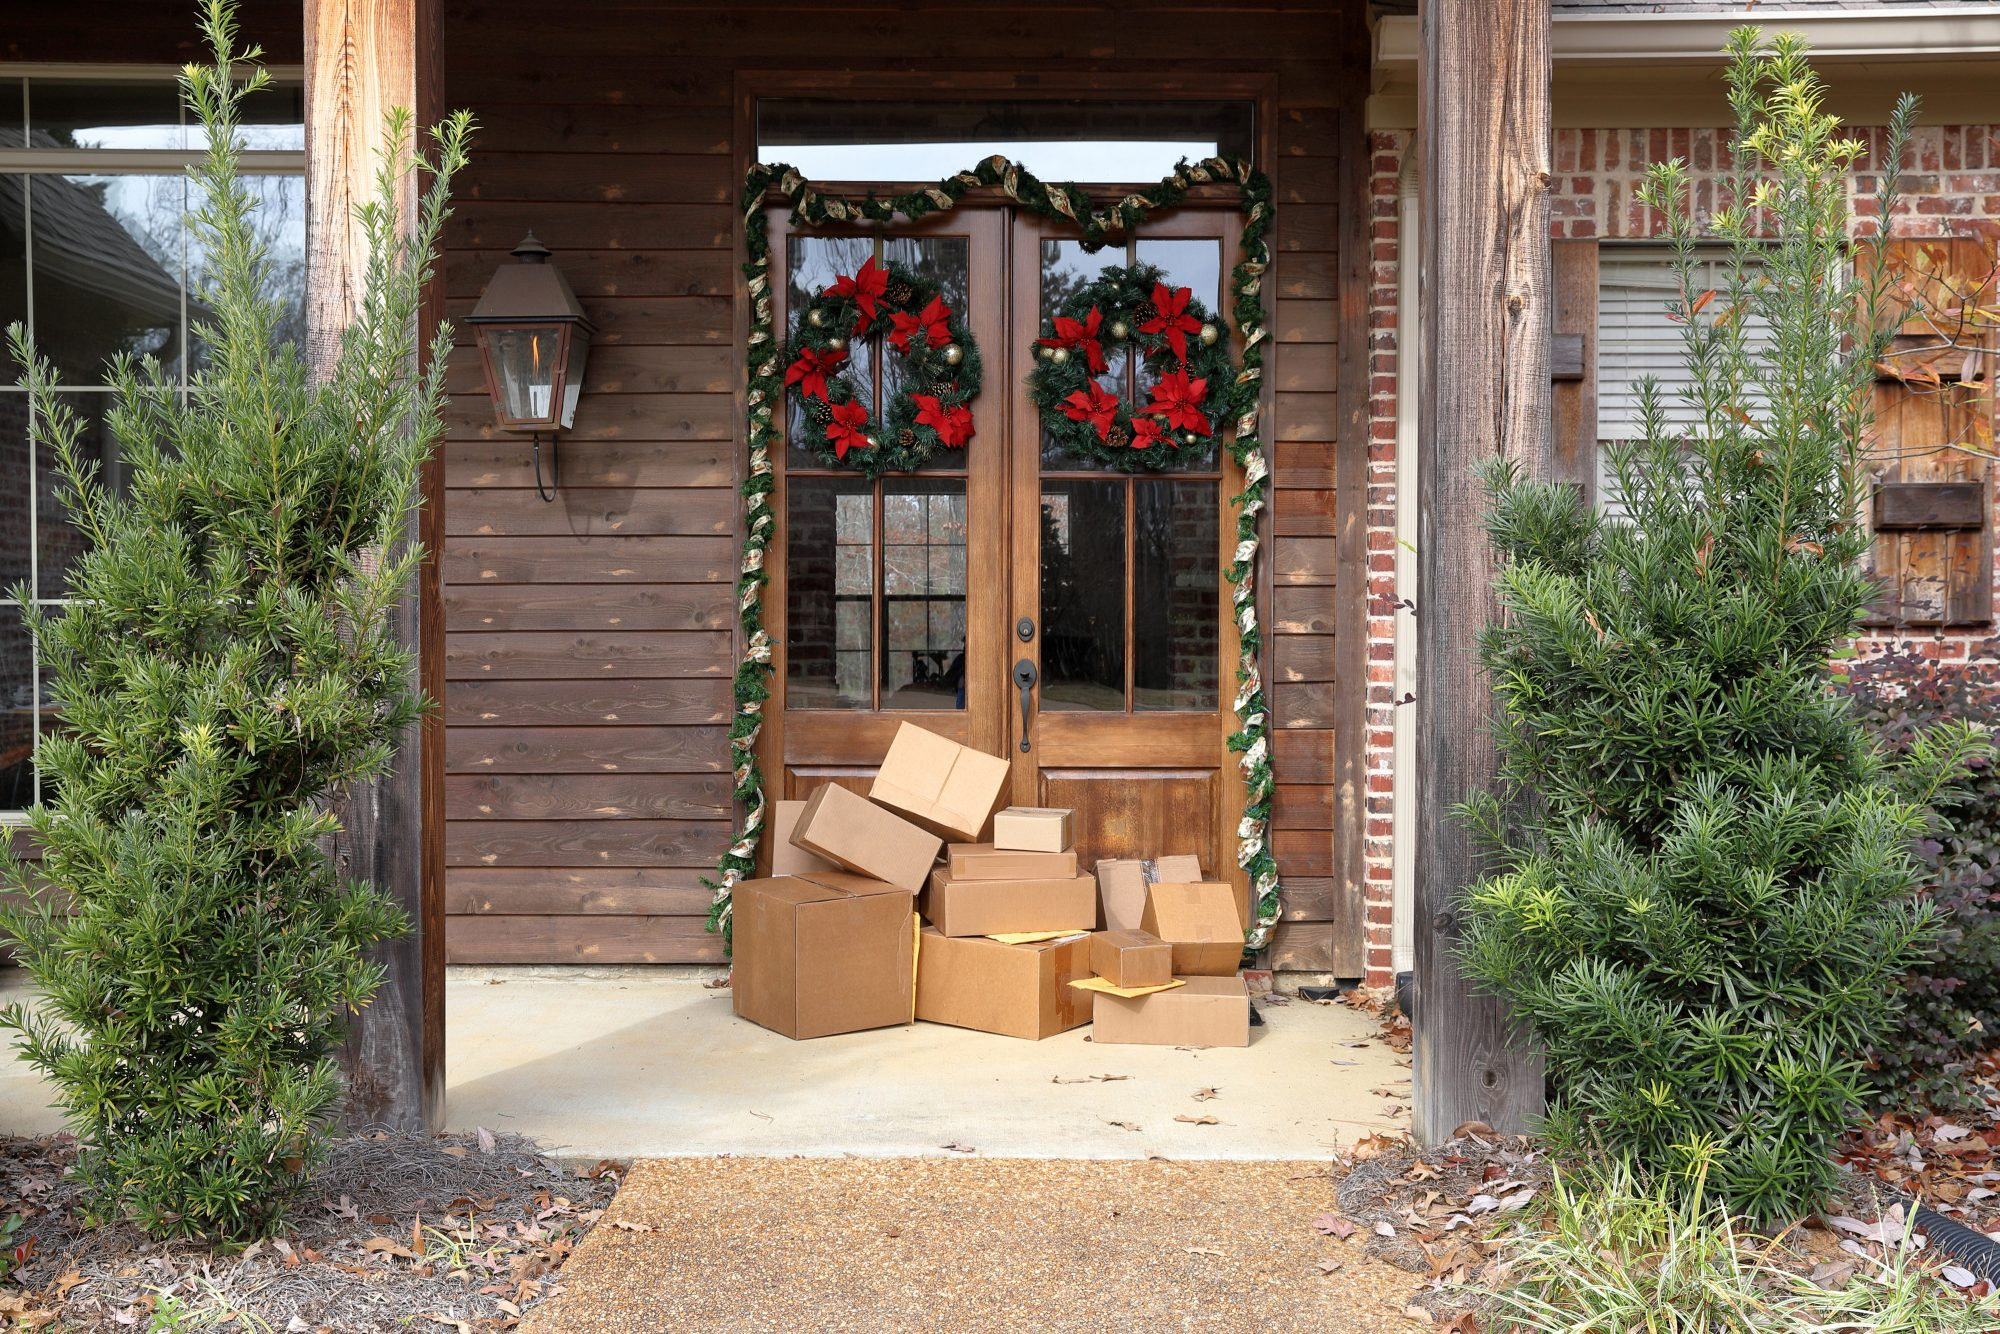 Holiday Delivery Boxes on Doorstep